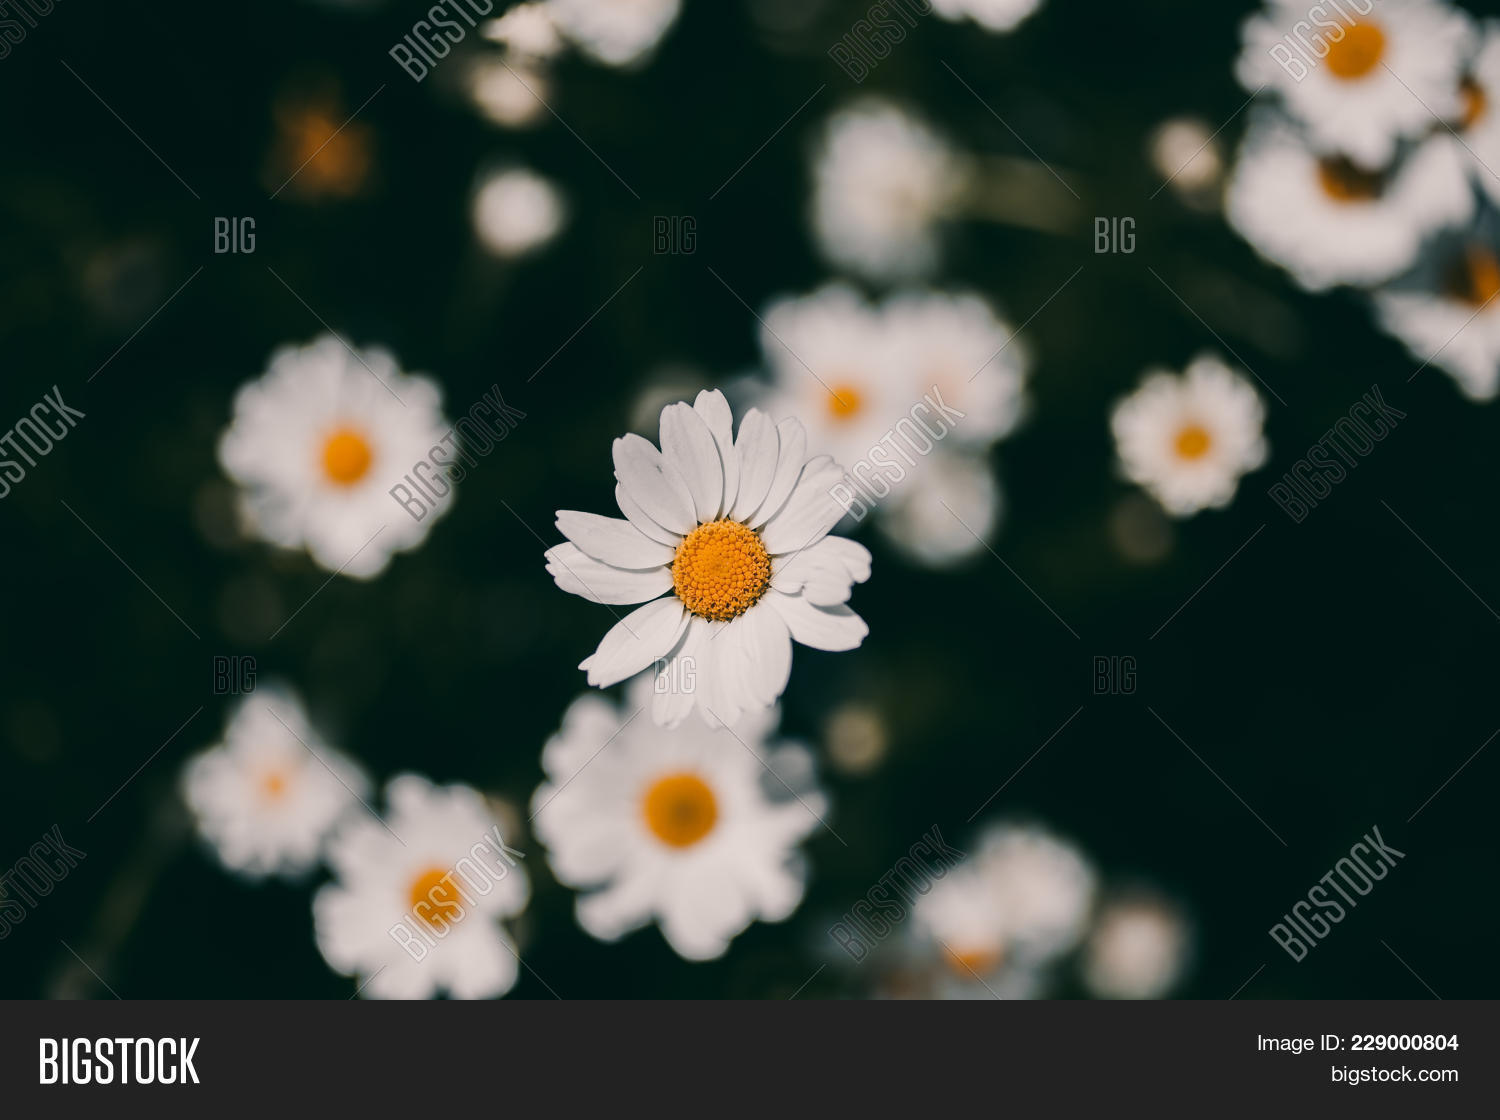 Daisies vintage image photo free trial bigstock closeup of daisy flower in vintage style somber daisy flowers izmirmasajfo